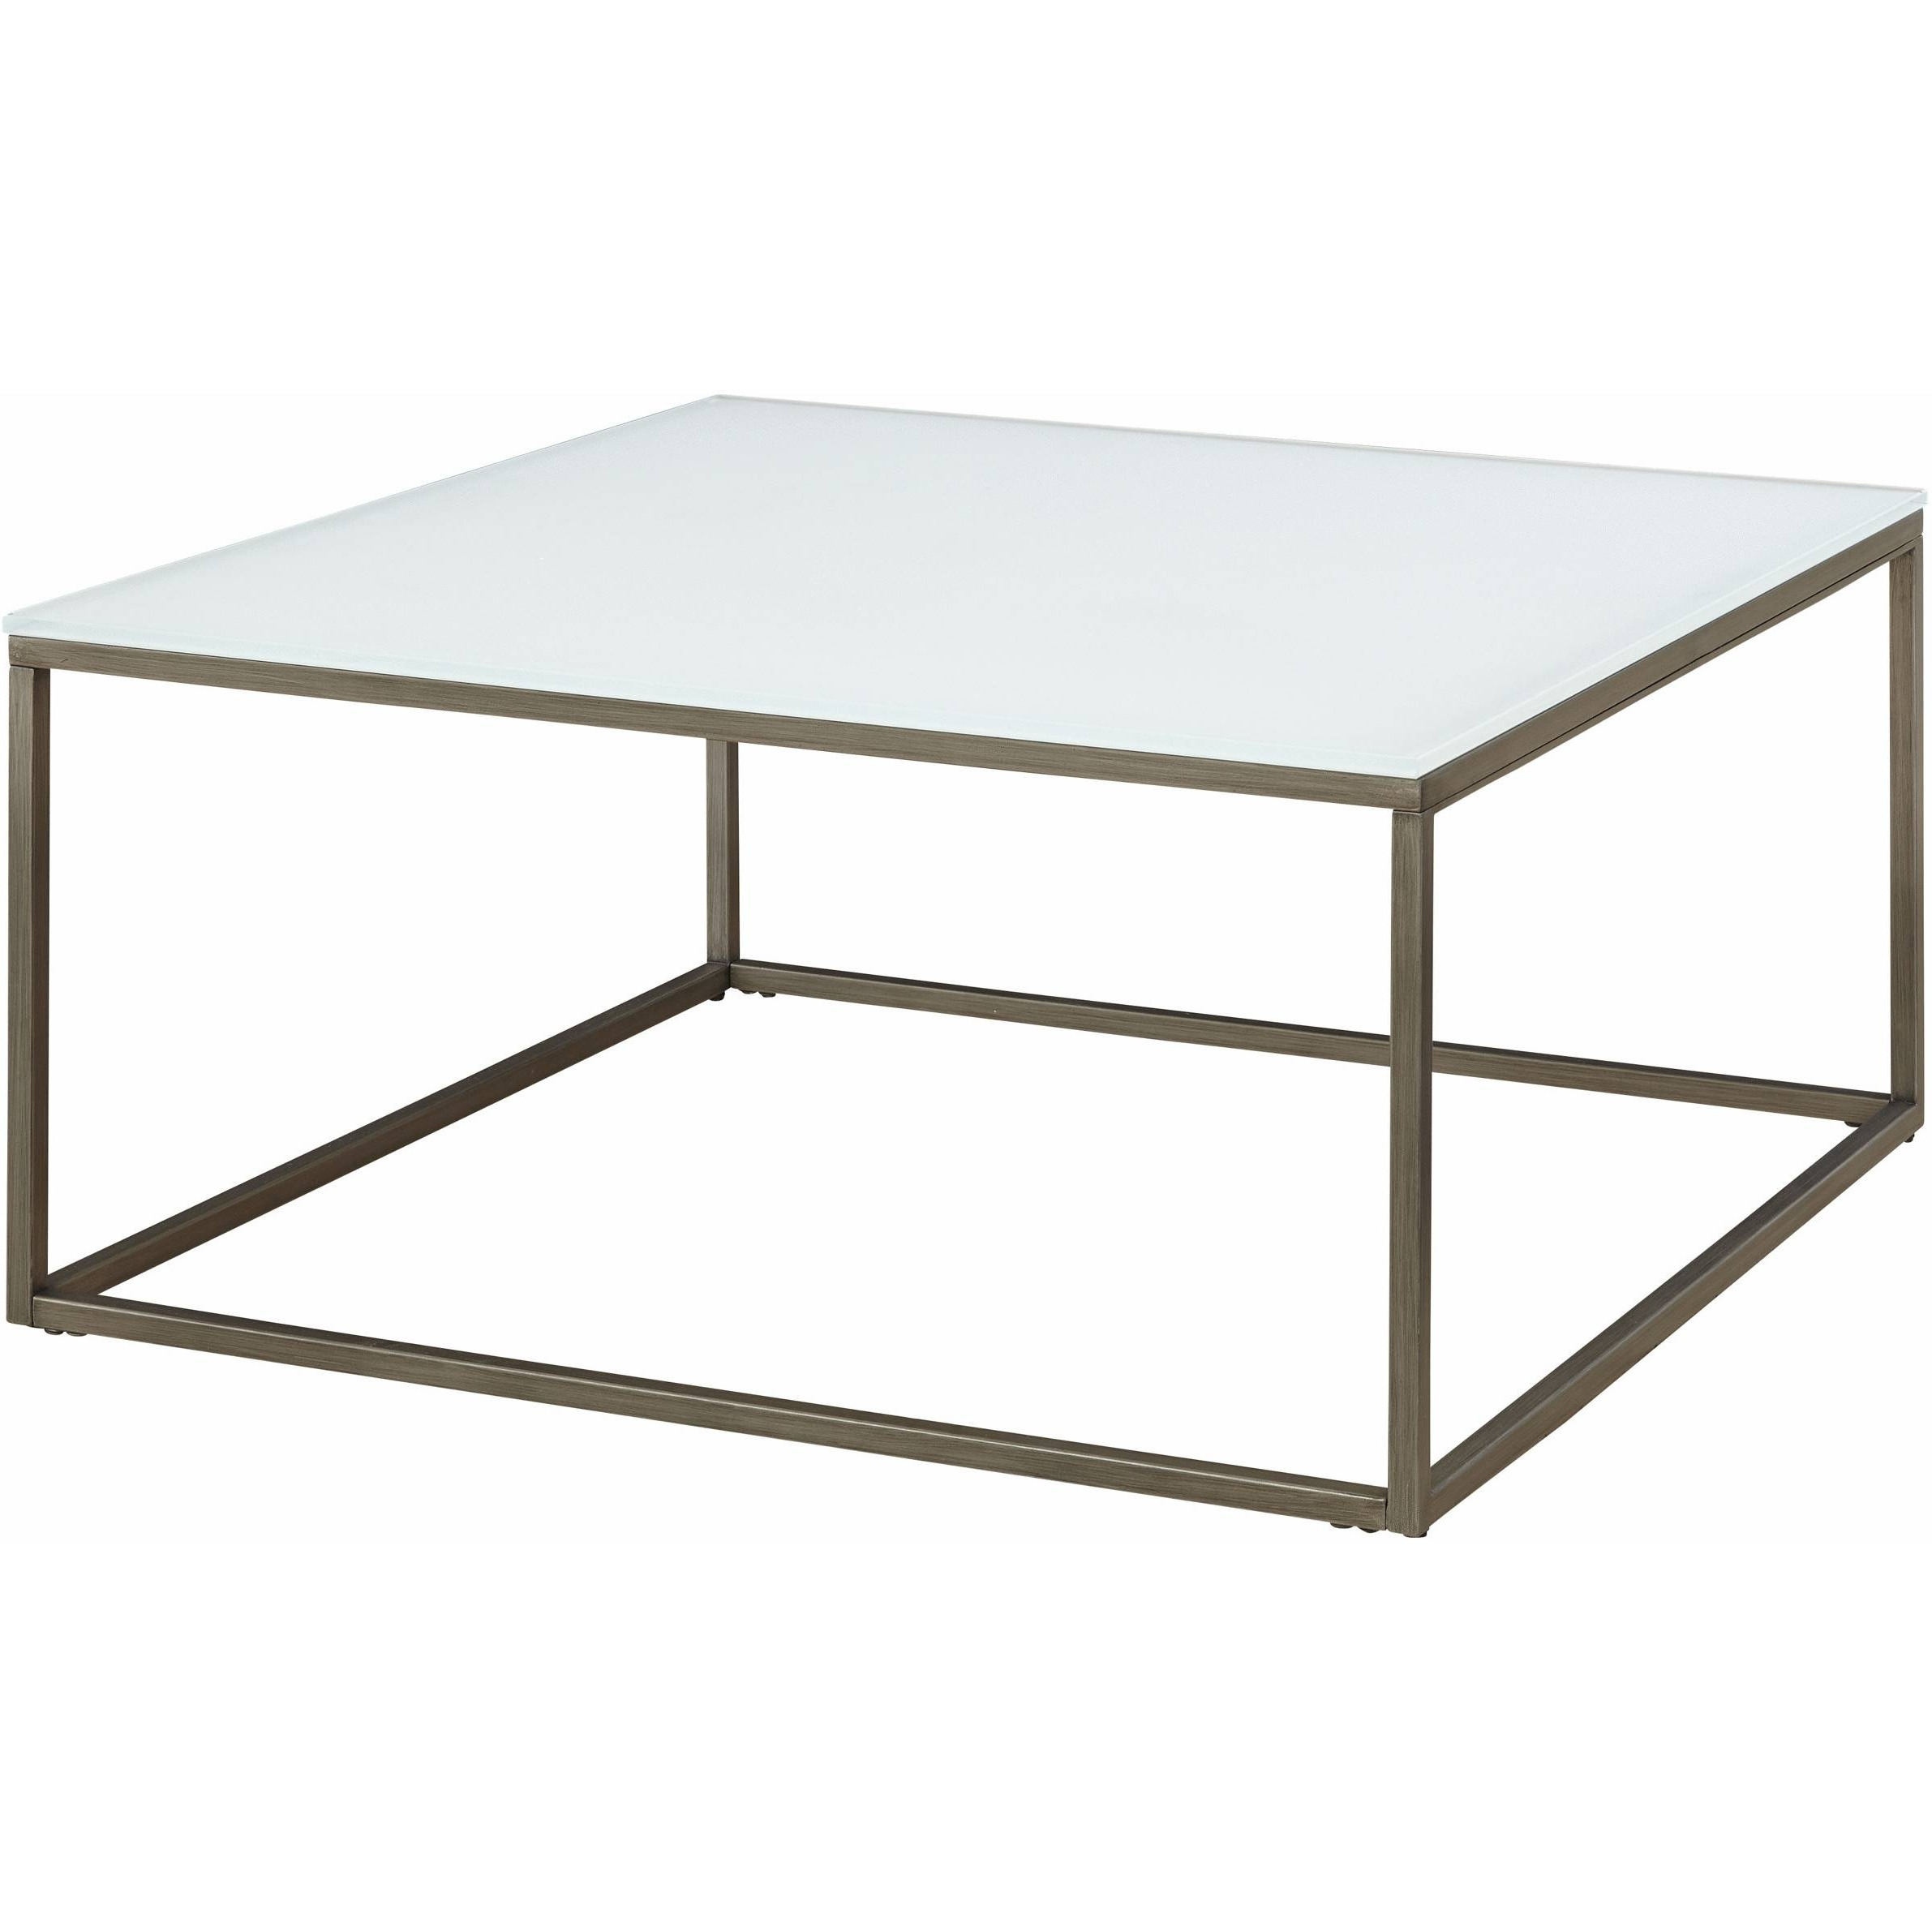 2019 Paris Natural Wood And Iron 30 Inch Square Coffee Tables Throughout 57 30 Inch Square Coffee Table, Avenue Six Merge Black 30 (Gallery 6 of 20)